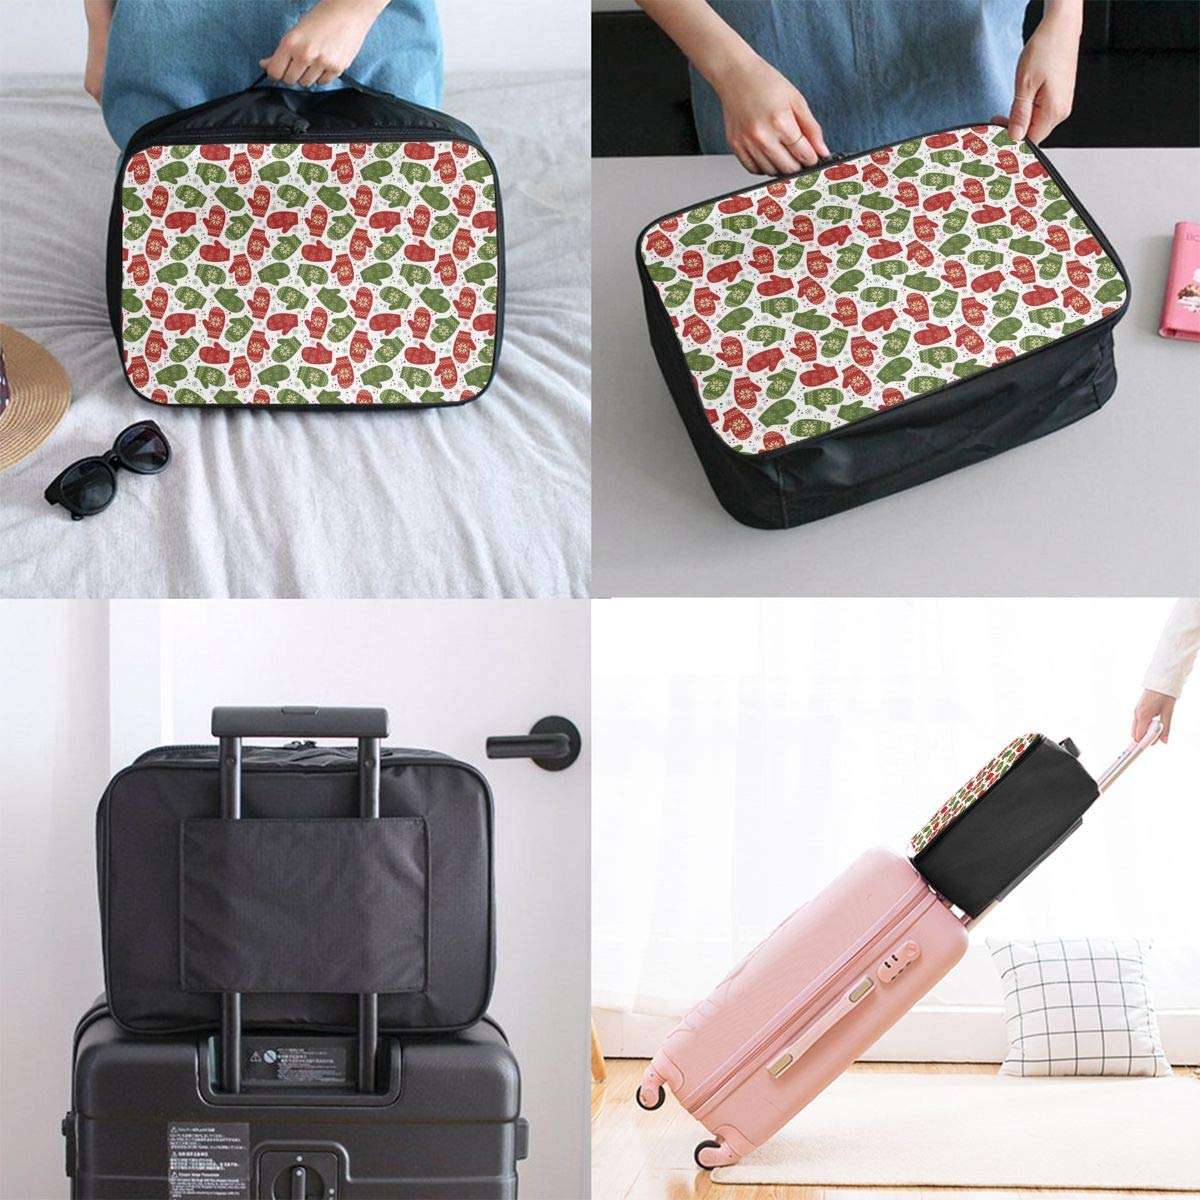 YueLJB Christmas Gloves Lightweight Large Capacity Portable Luggage Bag Travel Duffel Bag Storage Carry Luggage Duffle Tote Bag